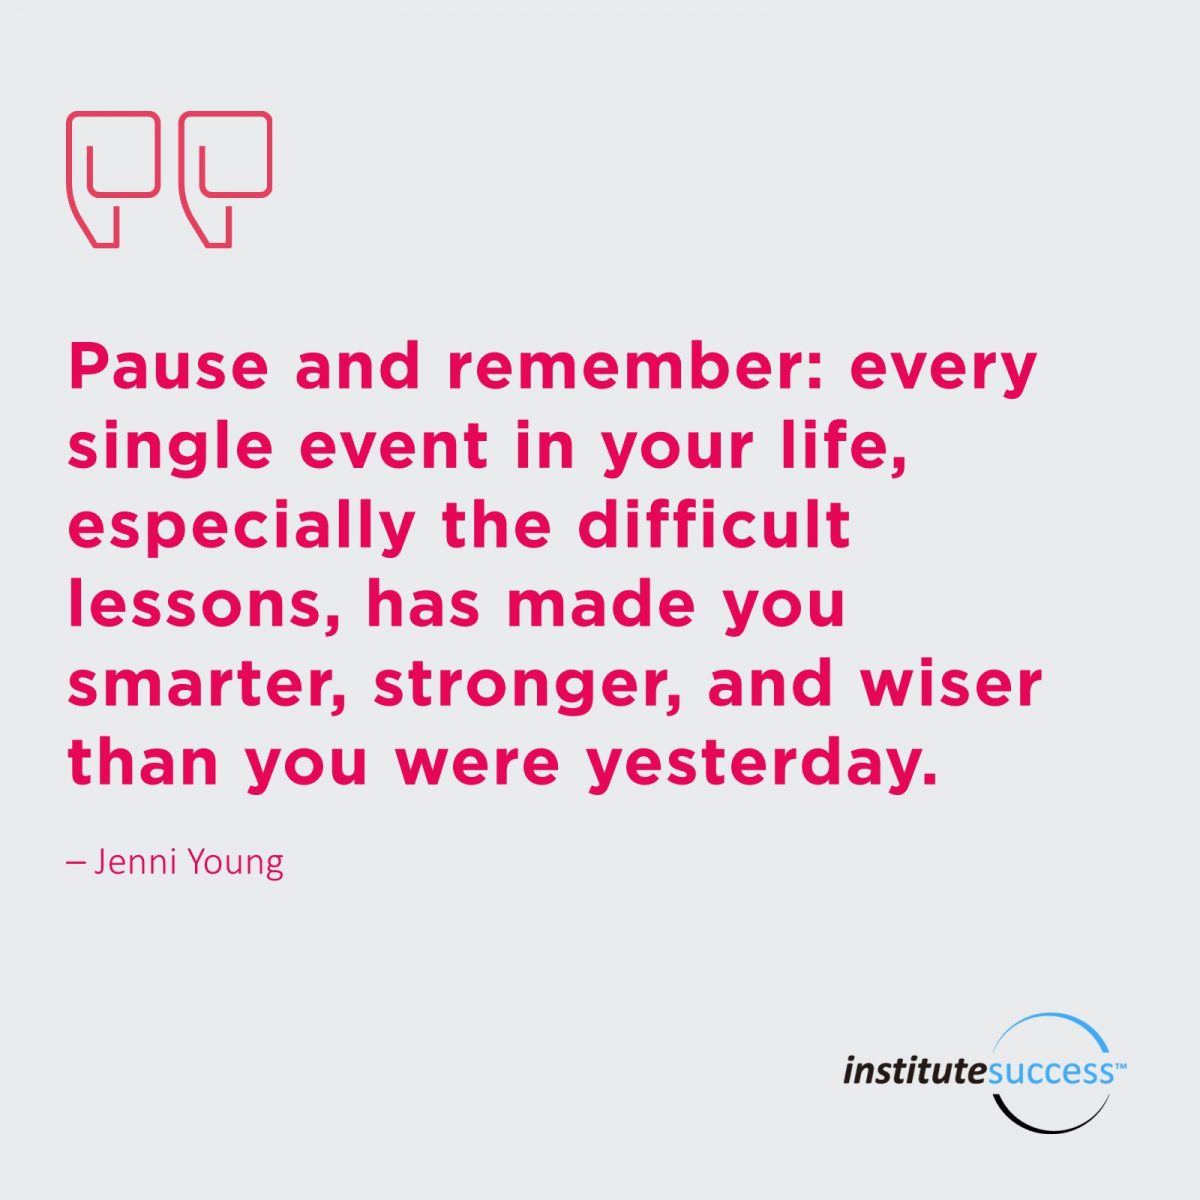 Pause and remember: every single event in your life , especially the difficult lessons, has made you smarter, stronger, and wiser than you were yesterday. 	Jenni Young